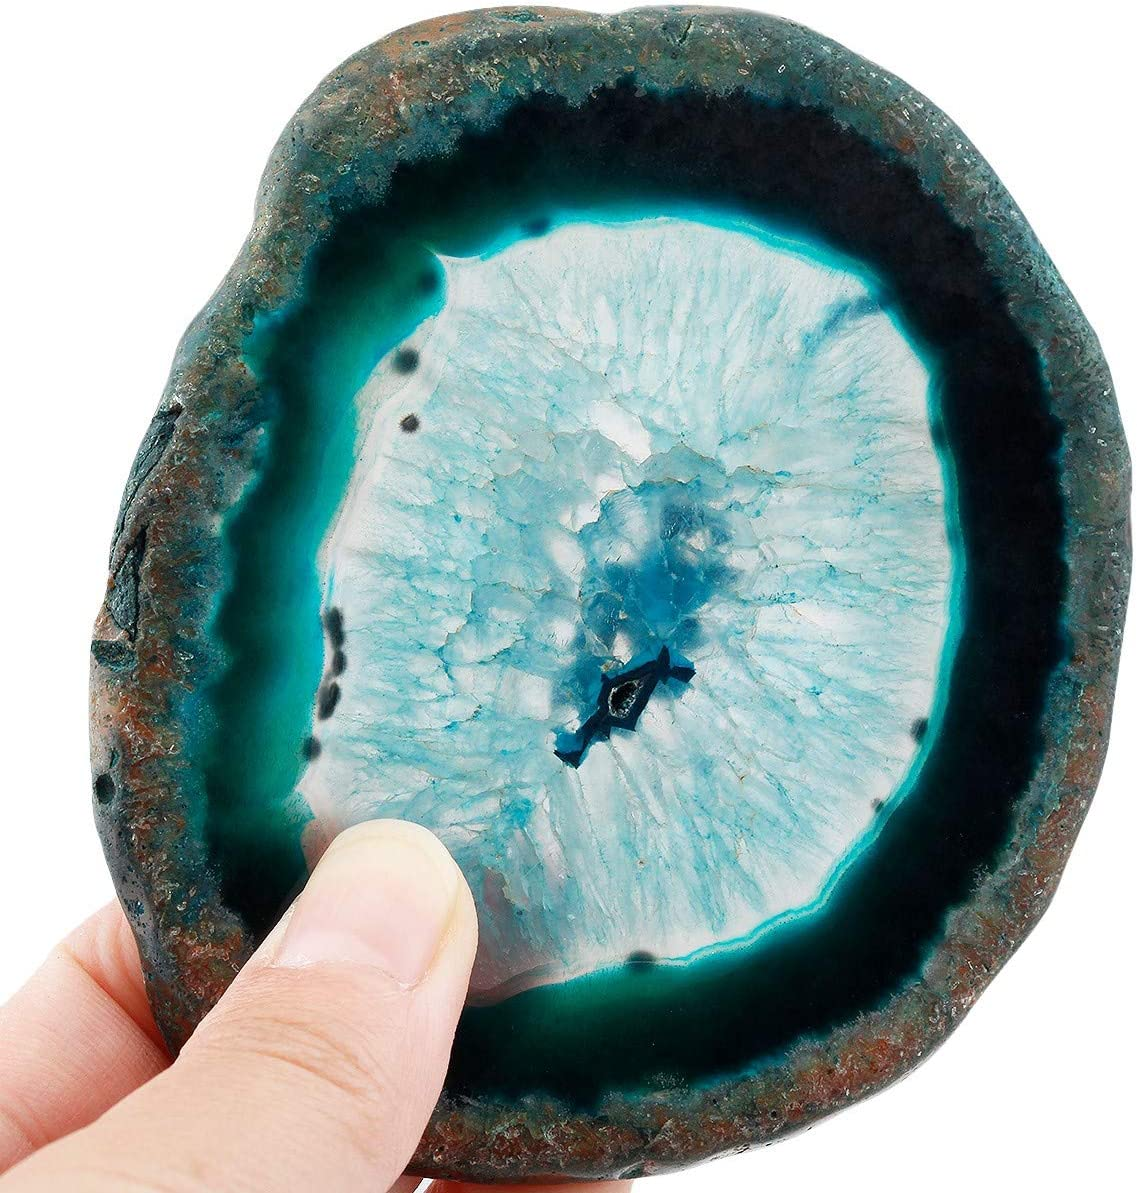 Nupuyai Polished Agate Geode Slices Cup Mats Coasters for Drinks Set of 2, Natural Stone Slab Place Cards for Wedding, Decorative Stone for Home Decoration 3-4 inches